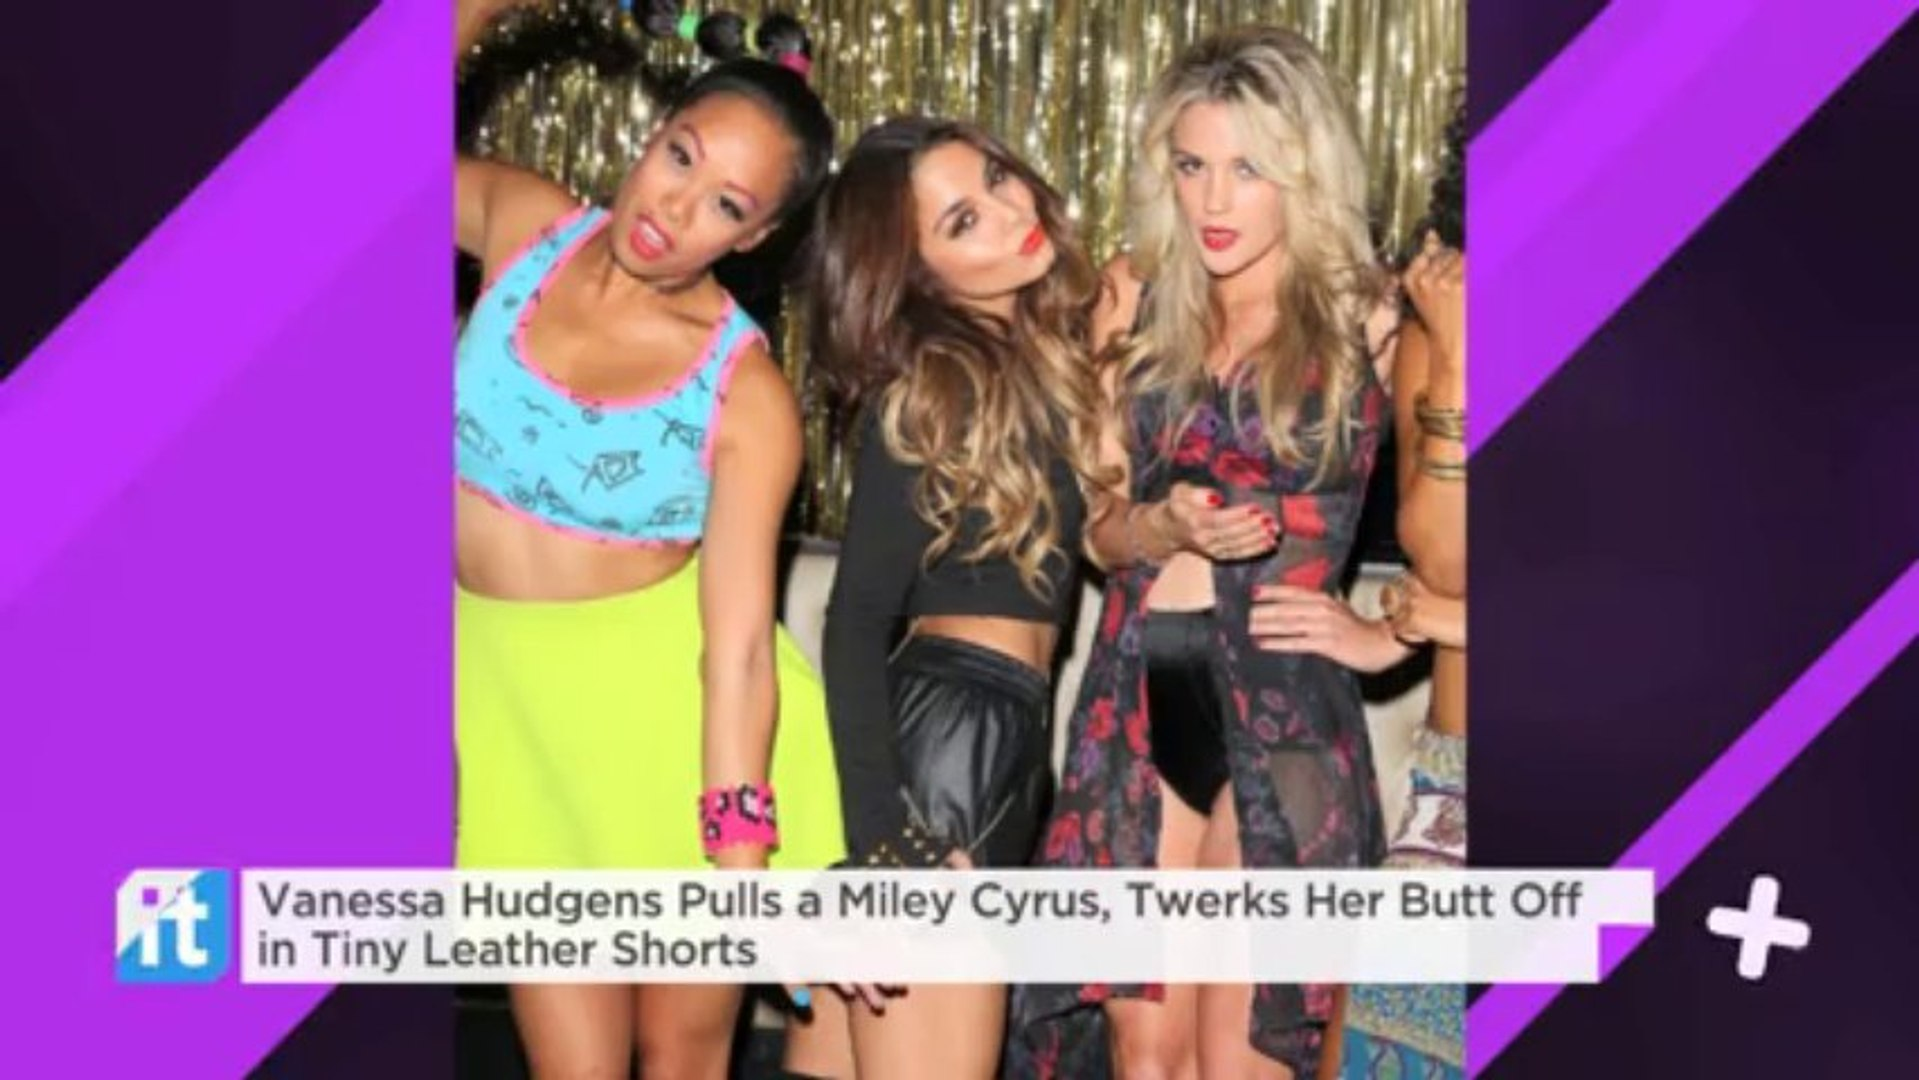 Vanessa Hudgens Pulls A Miley Cyrus, Twerks Her Butt Off In Tiny Leather Shorts